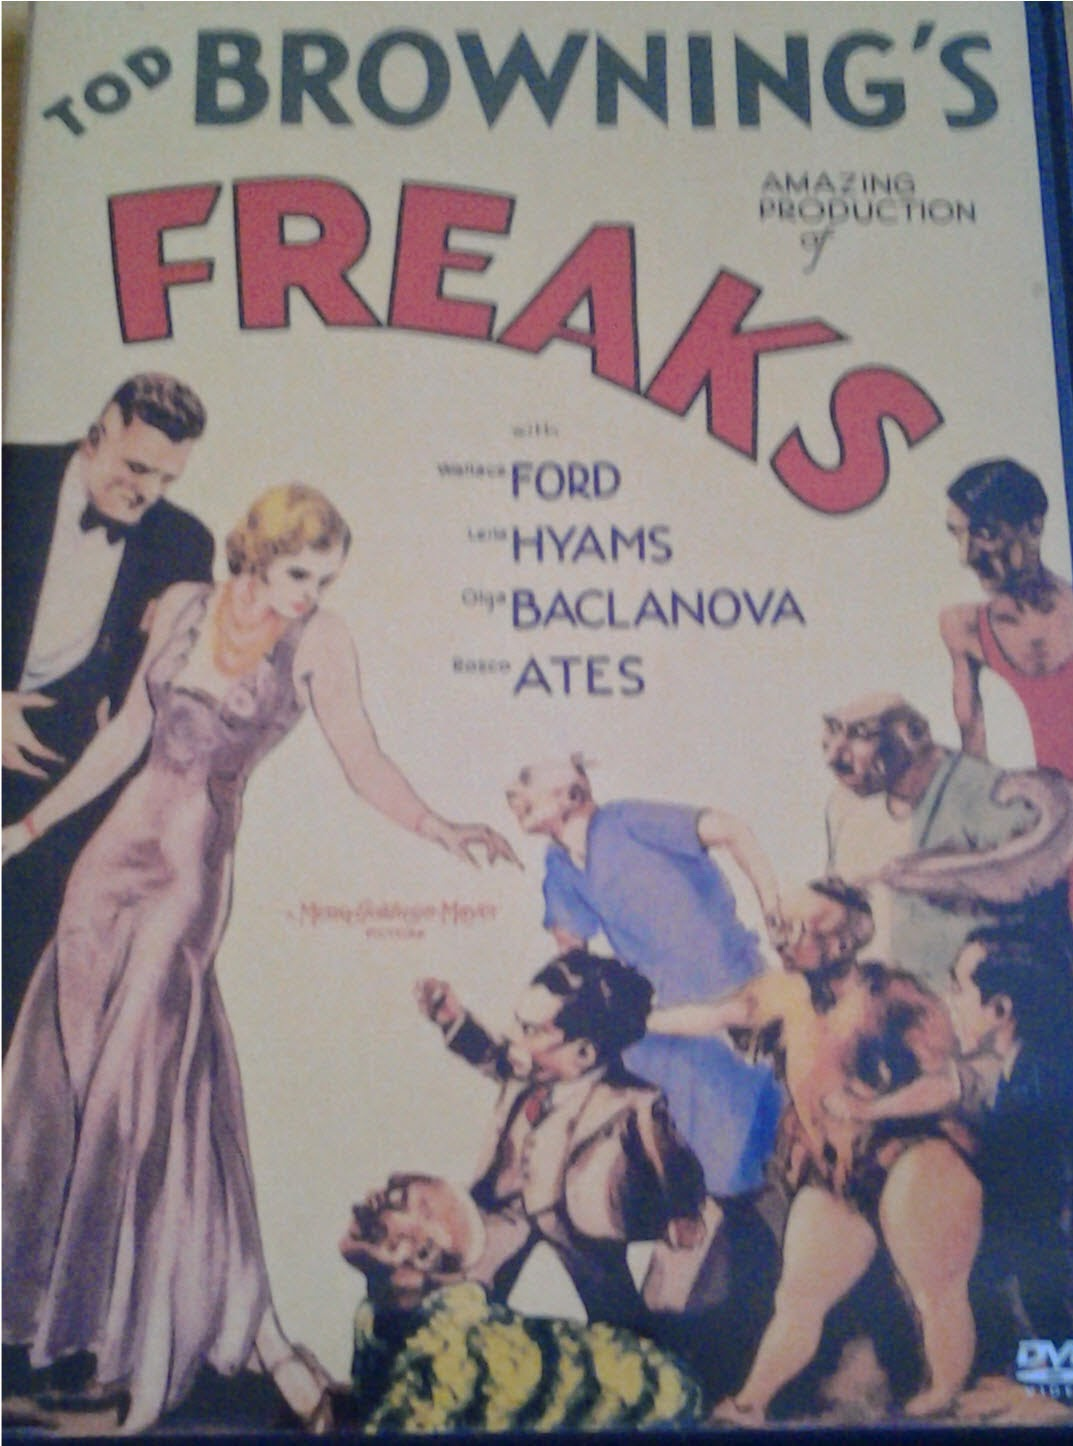 DVD Cover - Freaks